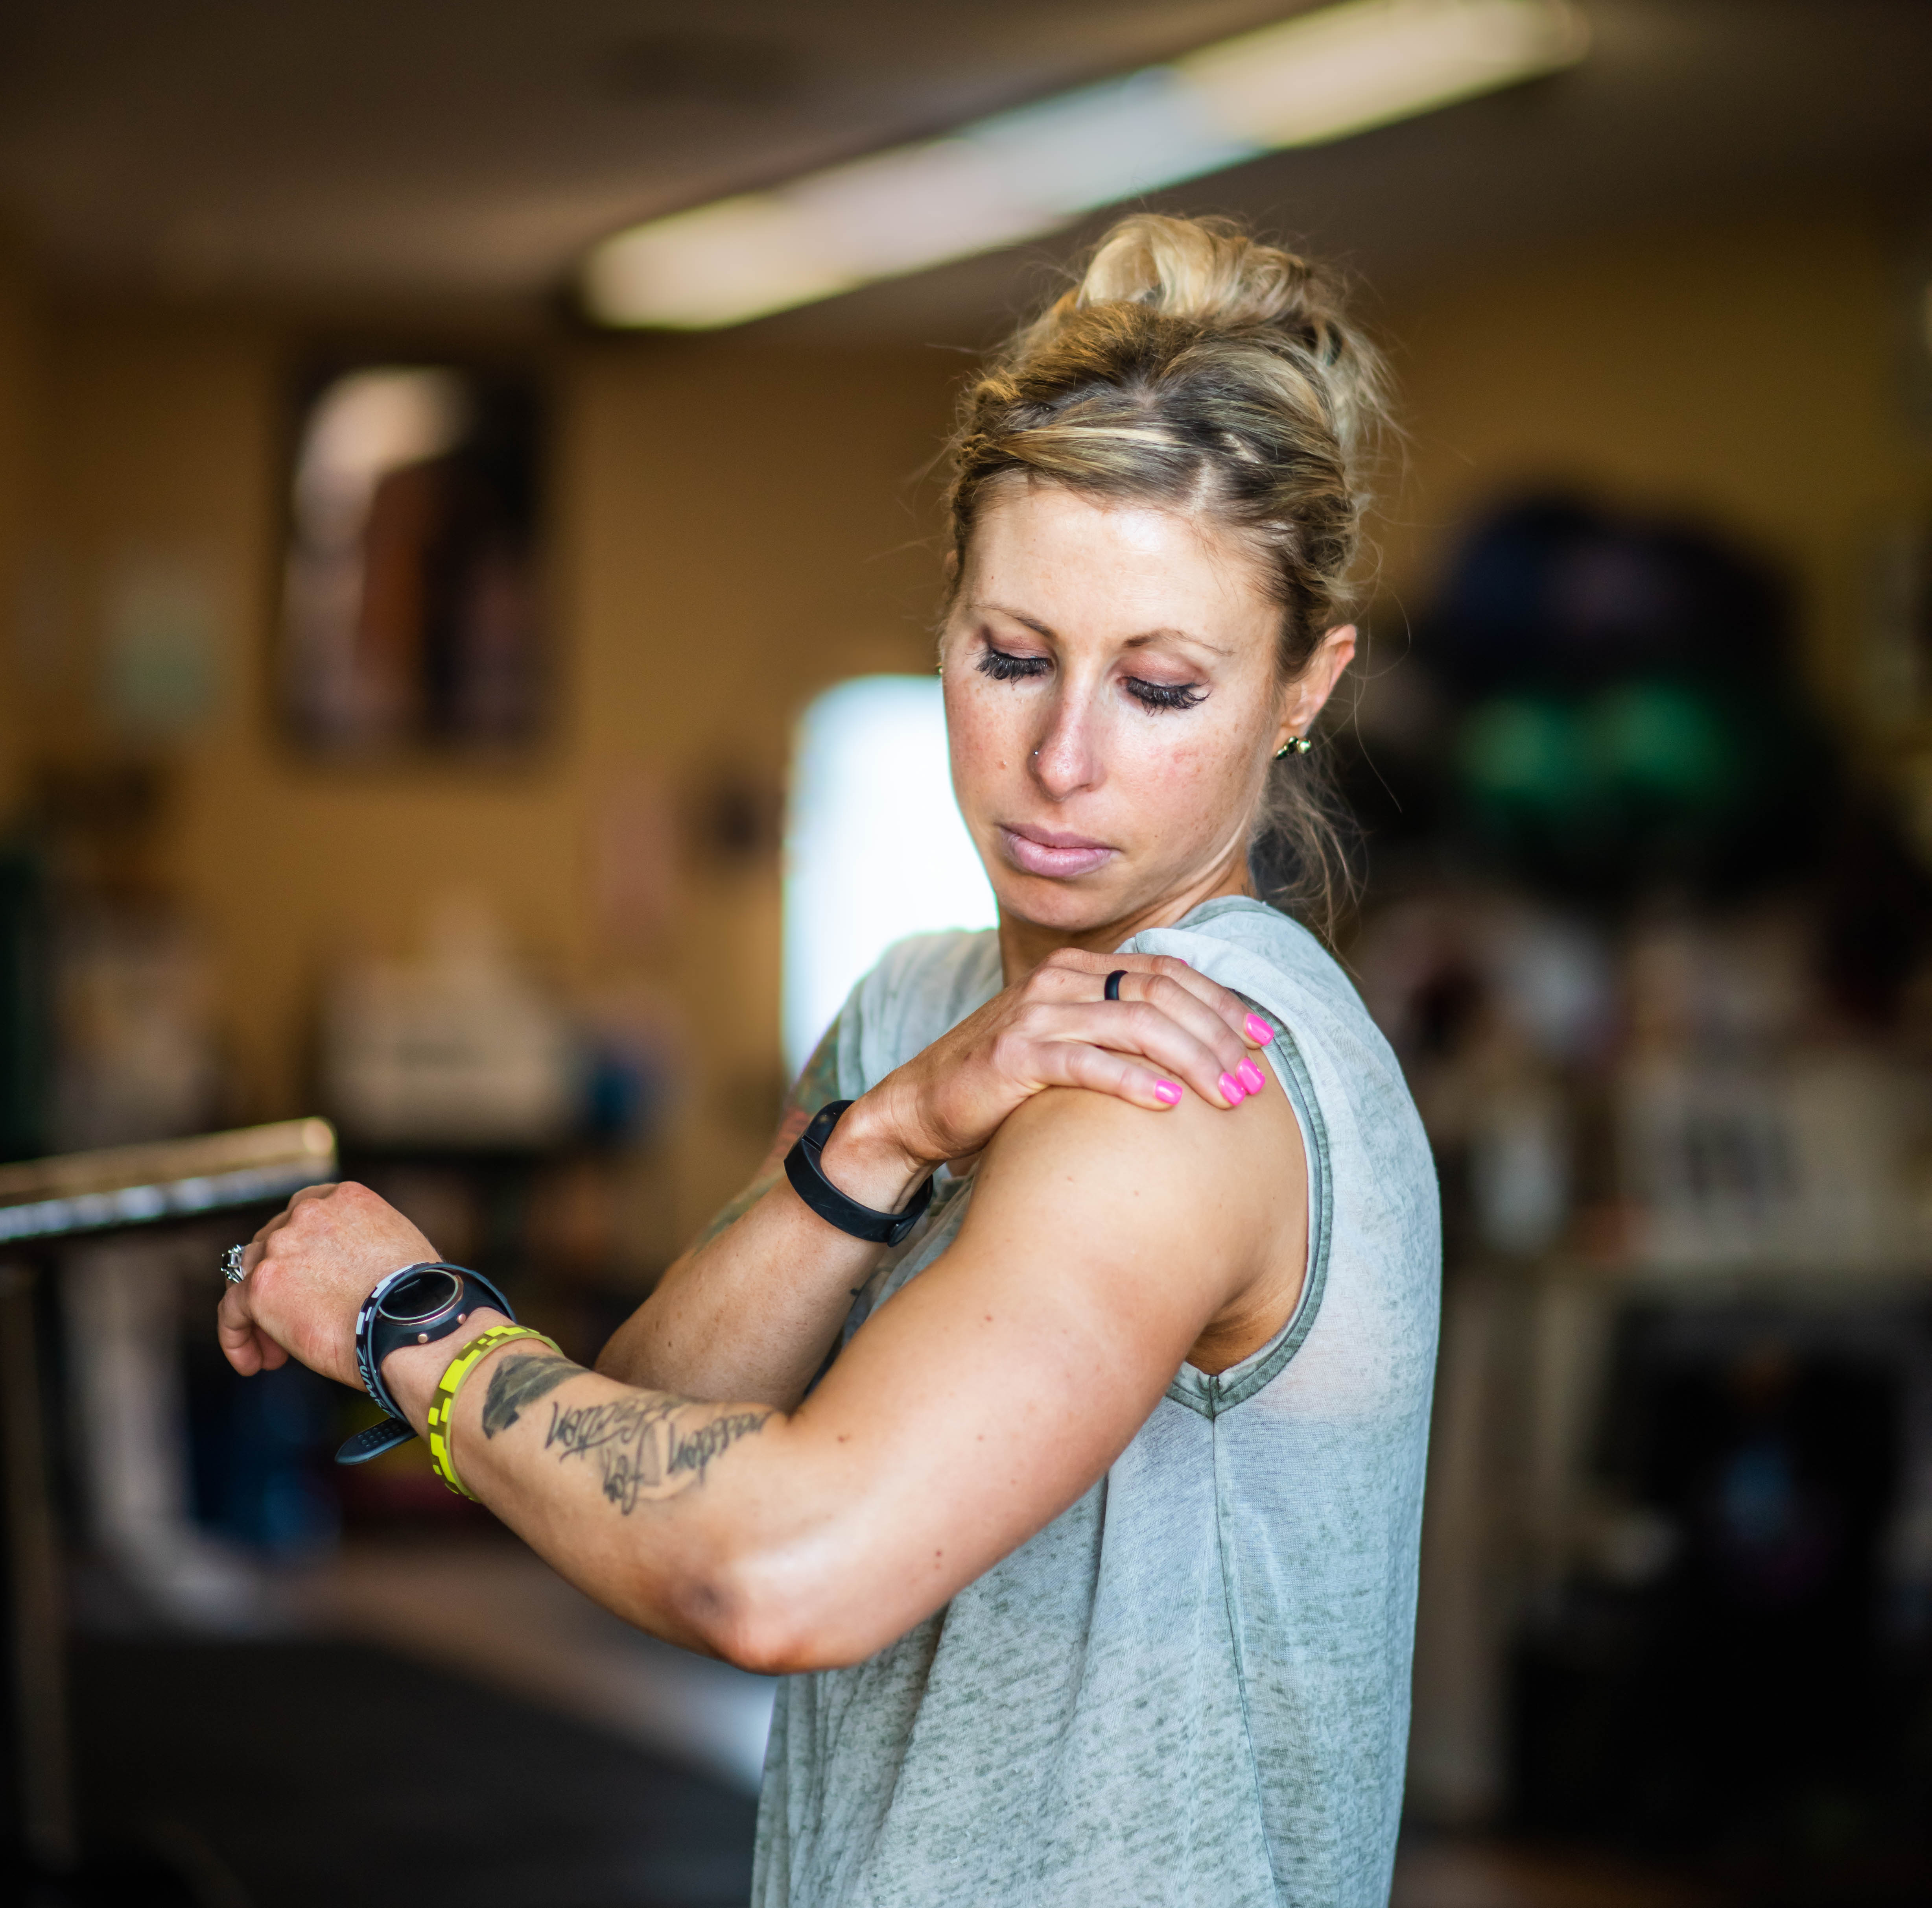 Rotator cuff injury: When less is more